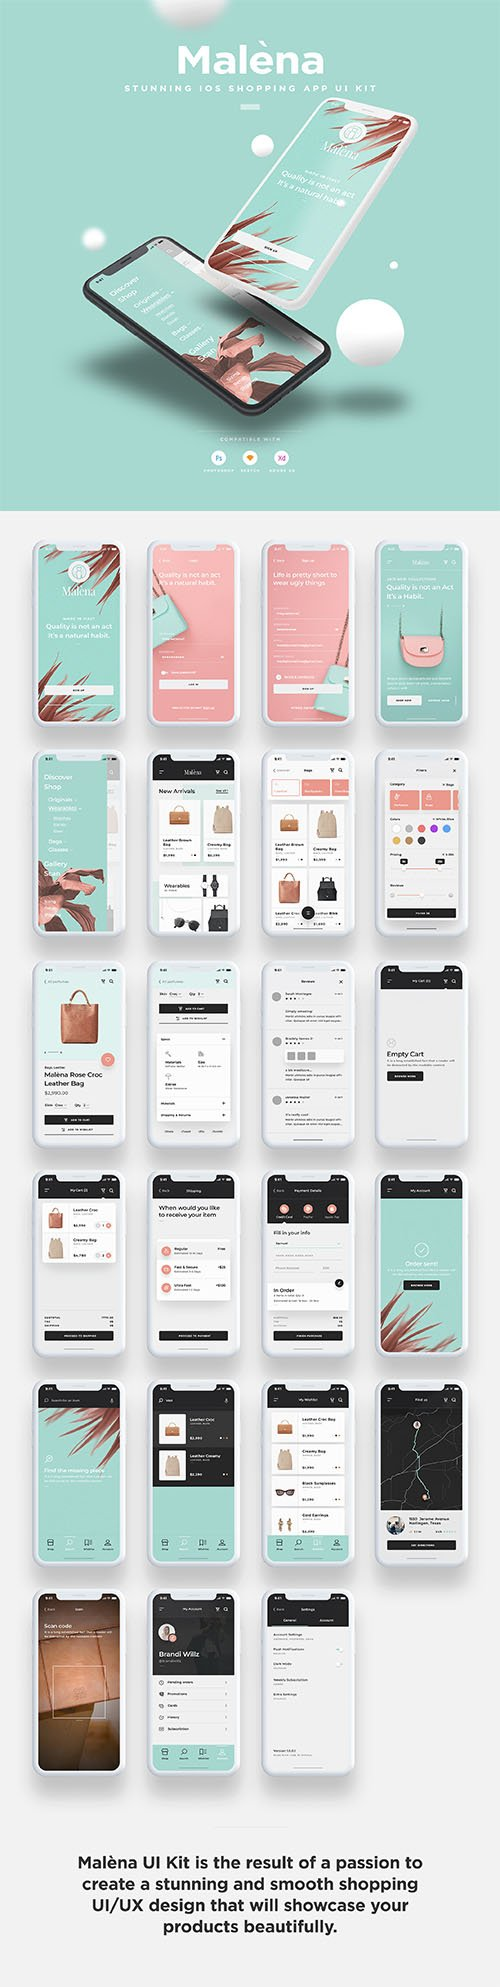 Malena iOS UI Kit